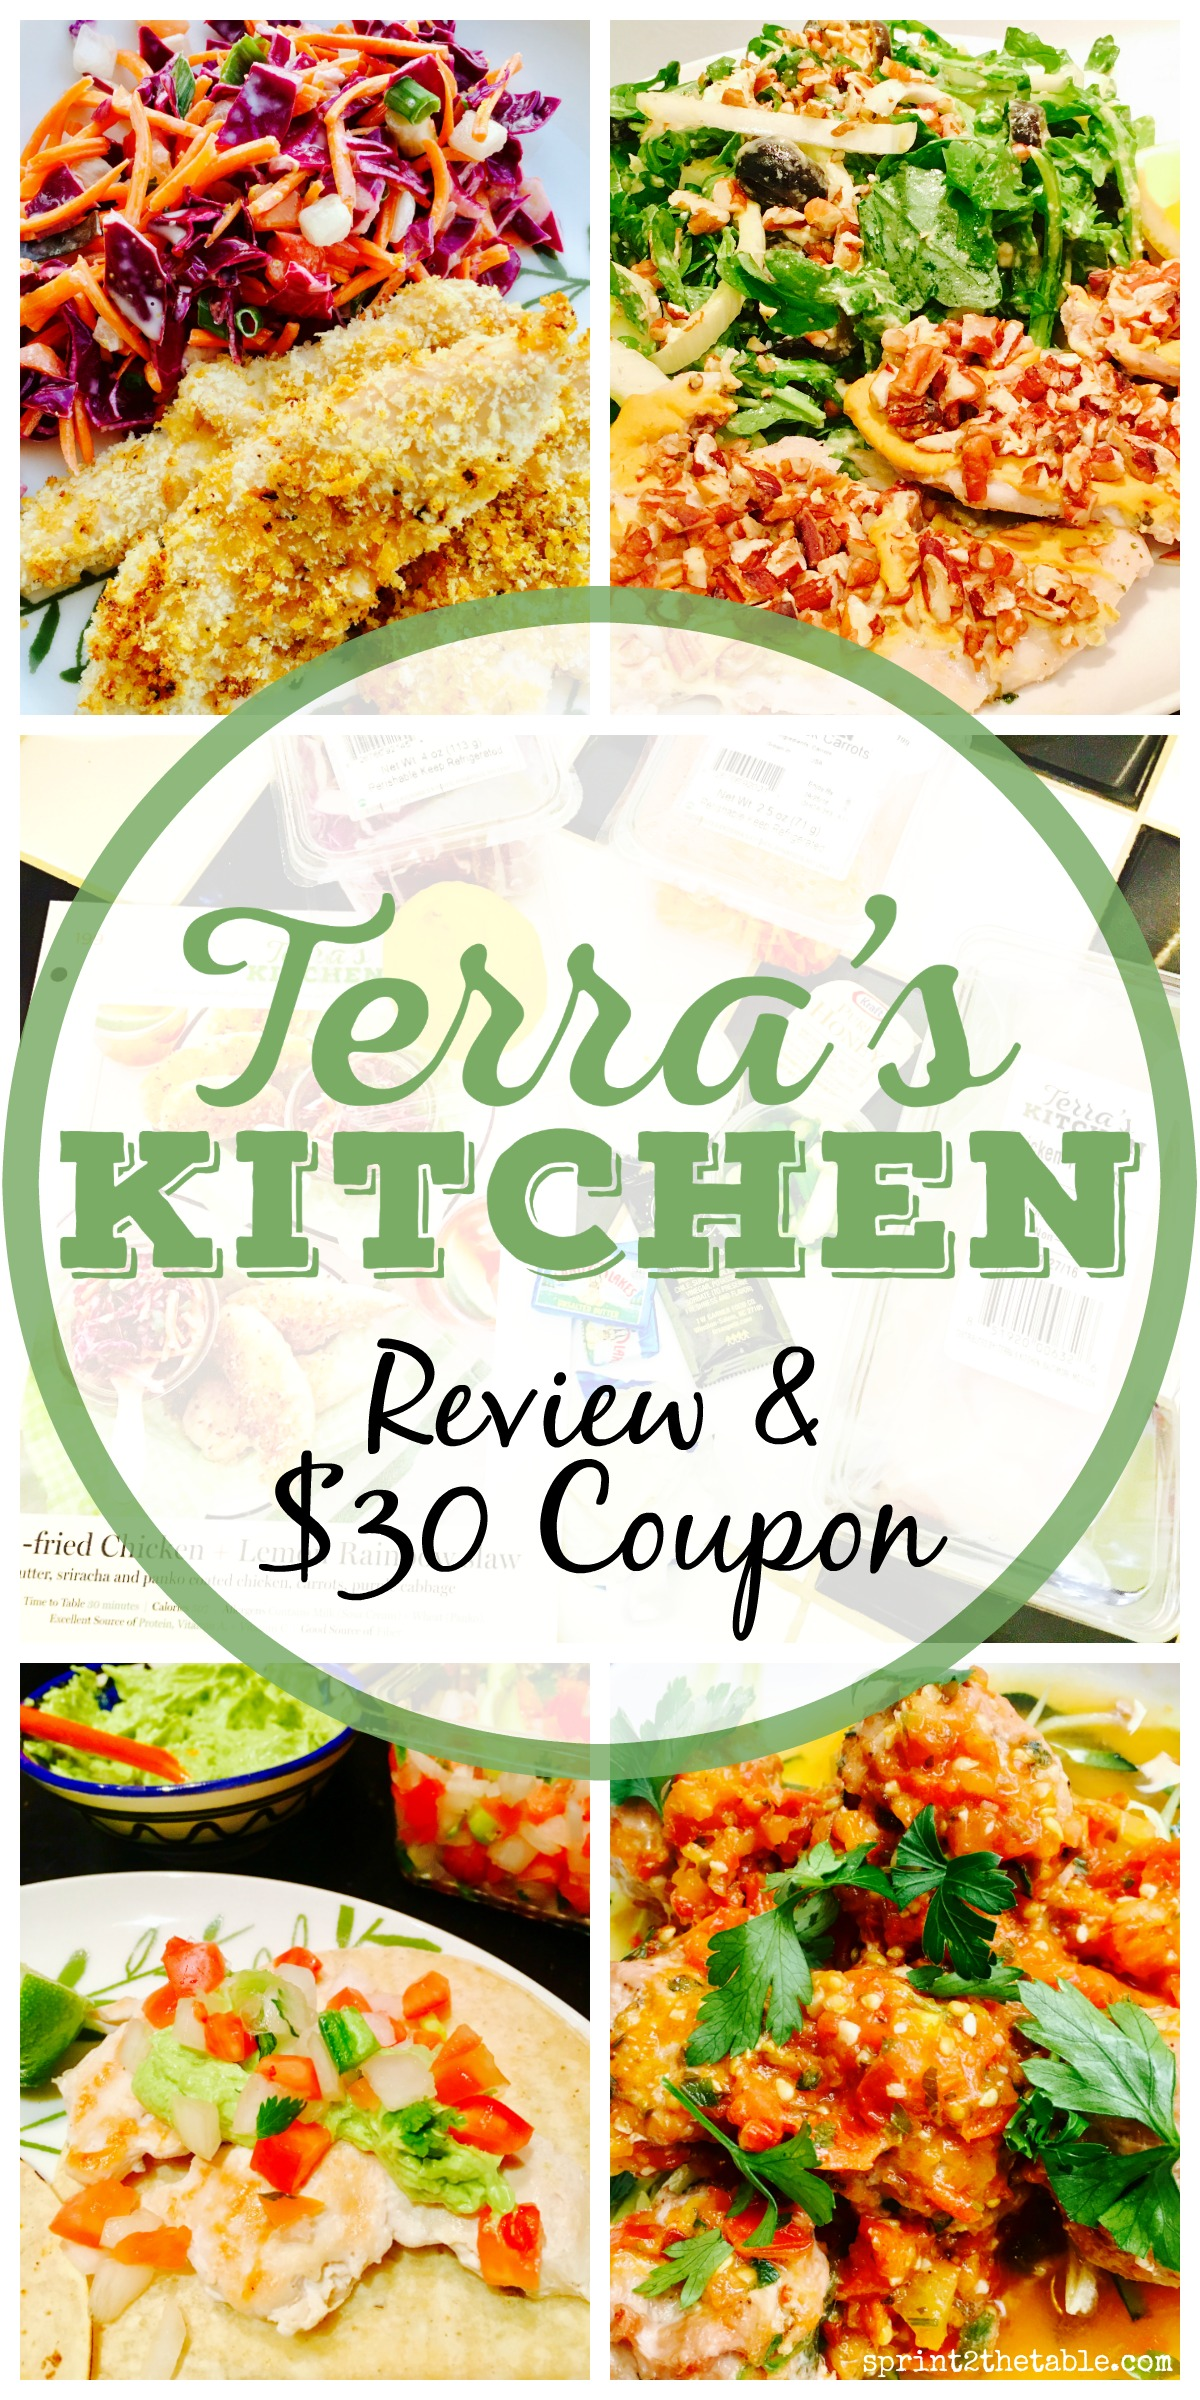 terras-kitchen-review-and-coupon